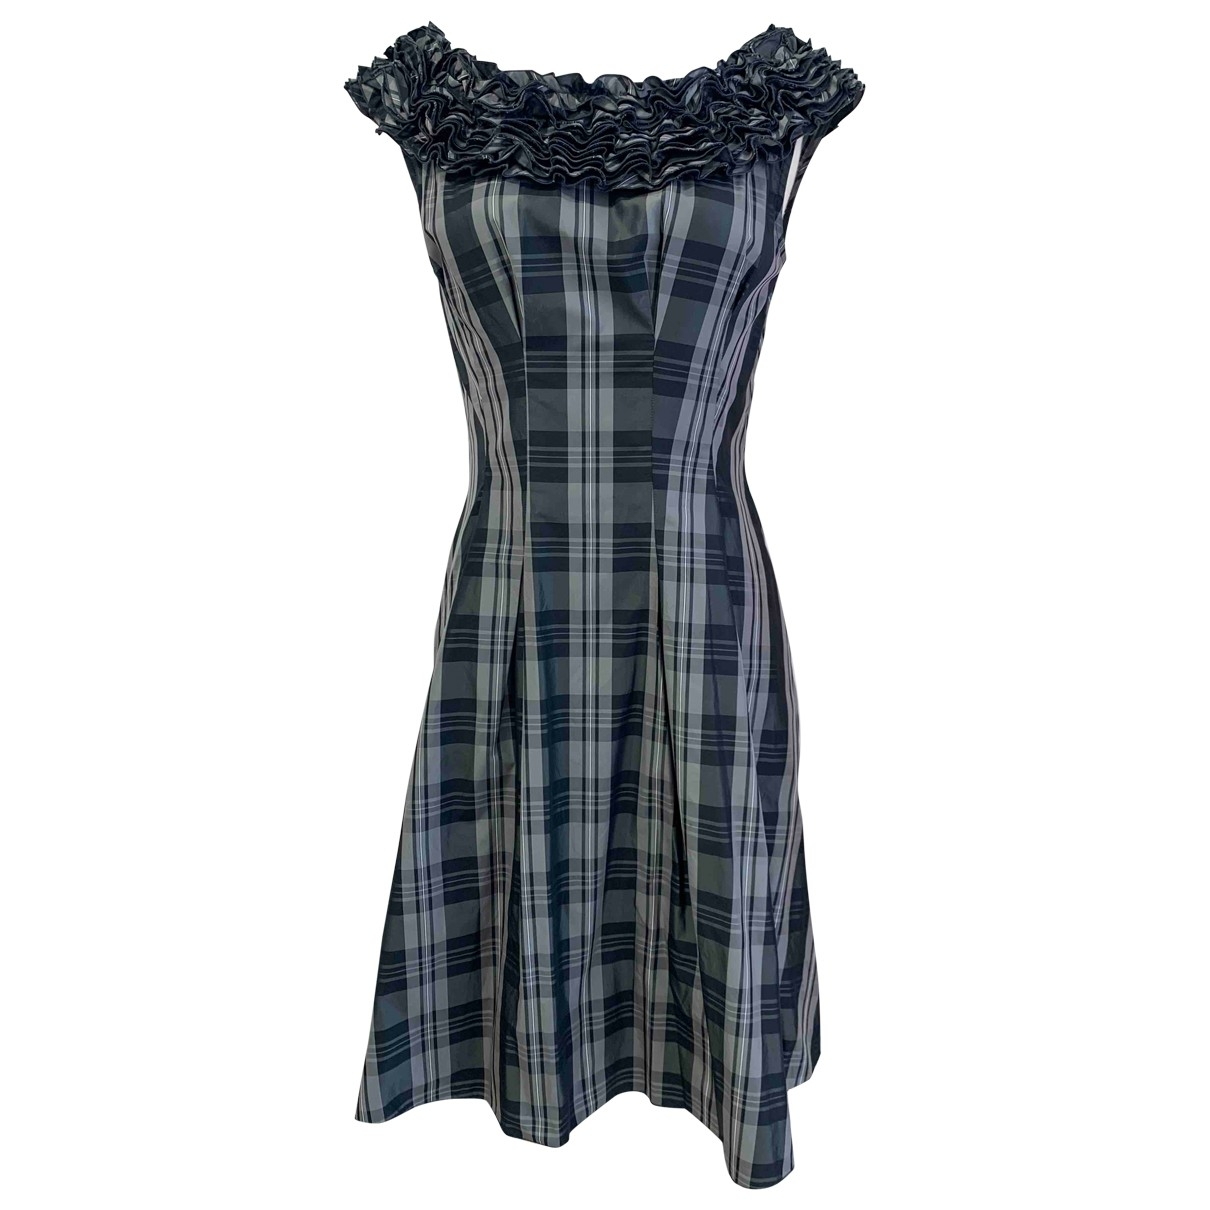 Moschino Cheap And Chic \N Kleid in  Grau Polyester